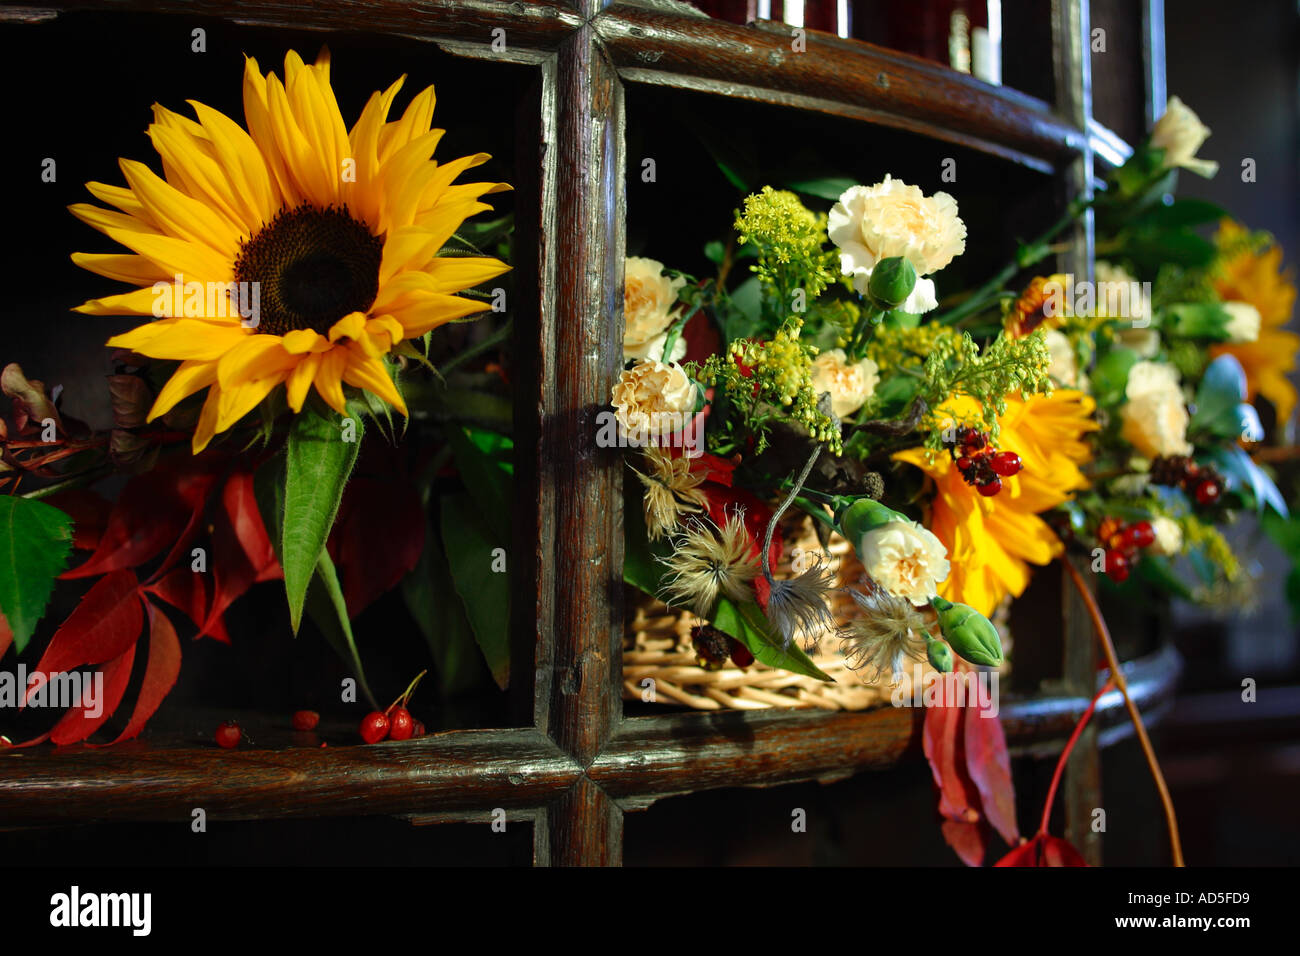 Autumn riches, flower display - Stock Image